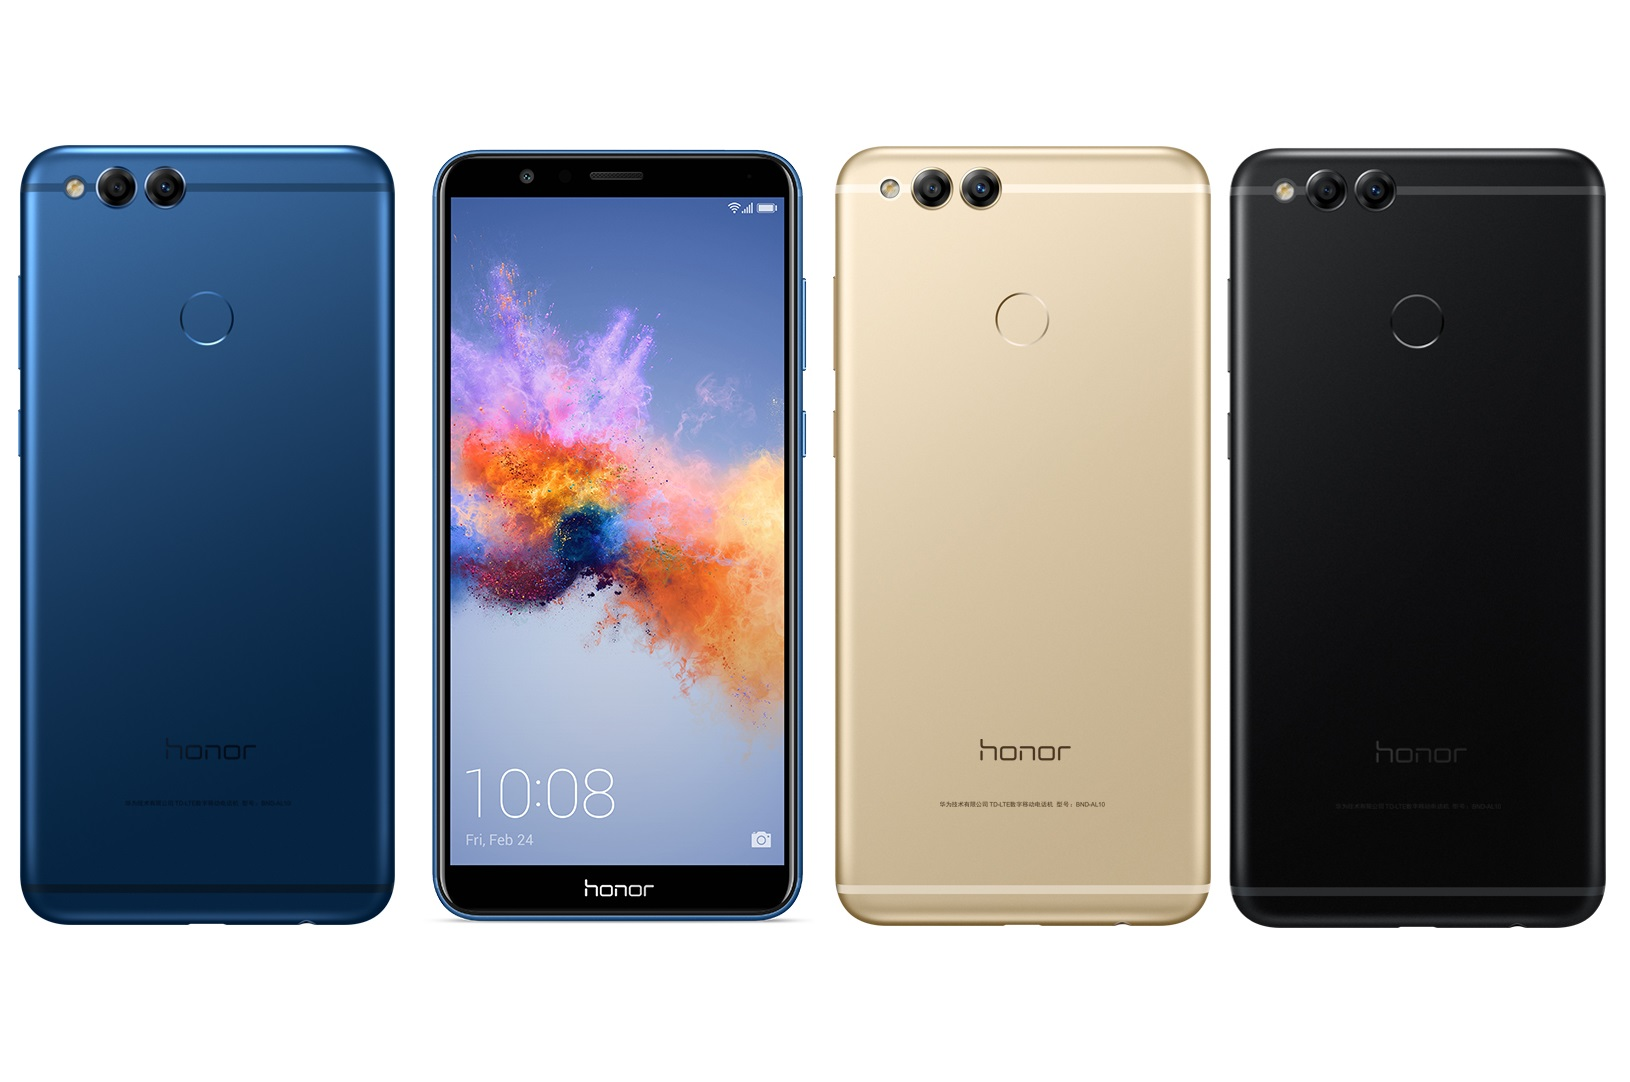 Huawei Honor View 10 and Honor 7X hit the US - NotebookCheck